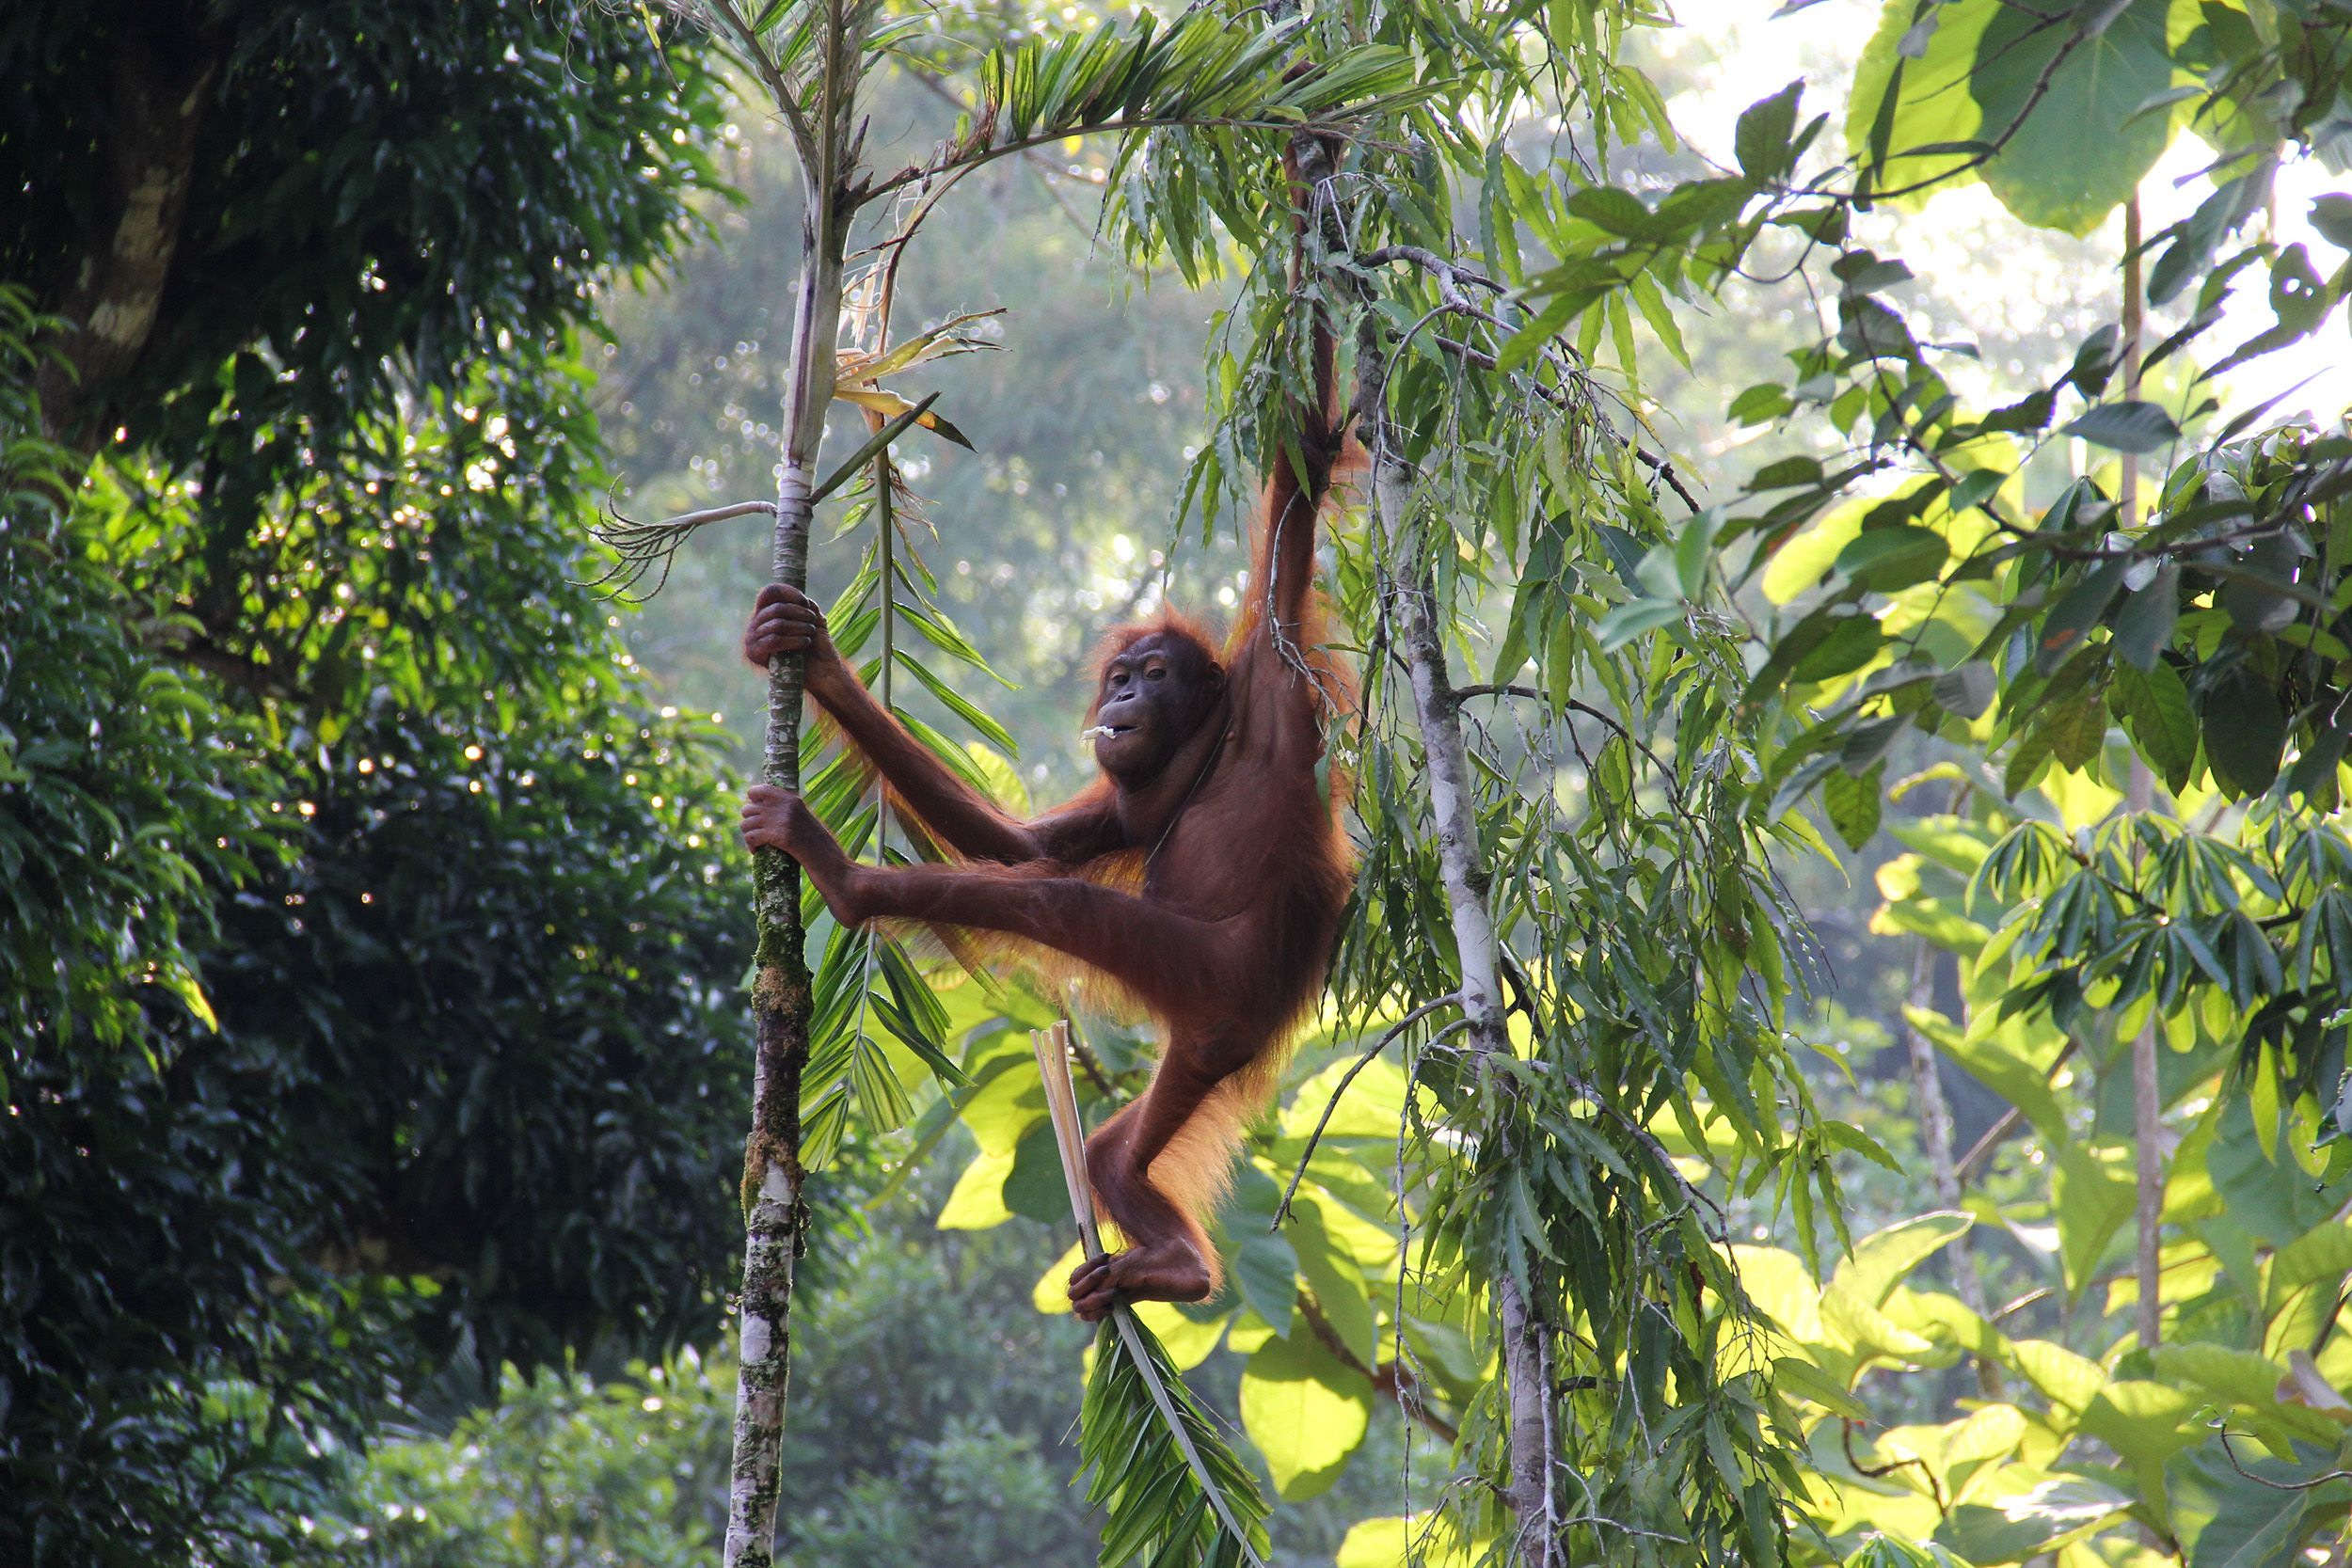 Borneo Tours: These photos show why Borneo offers the wildlife holiday of a lifetime